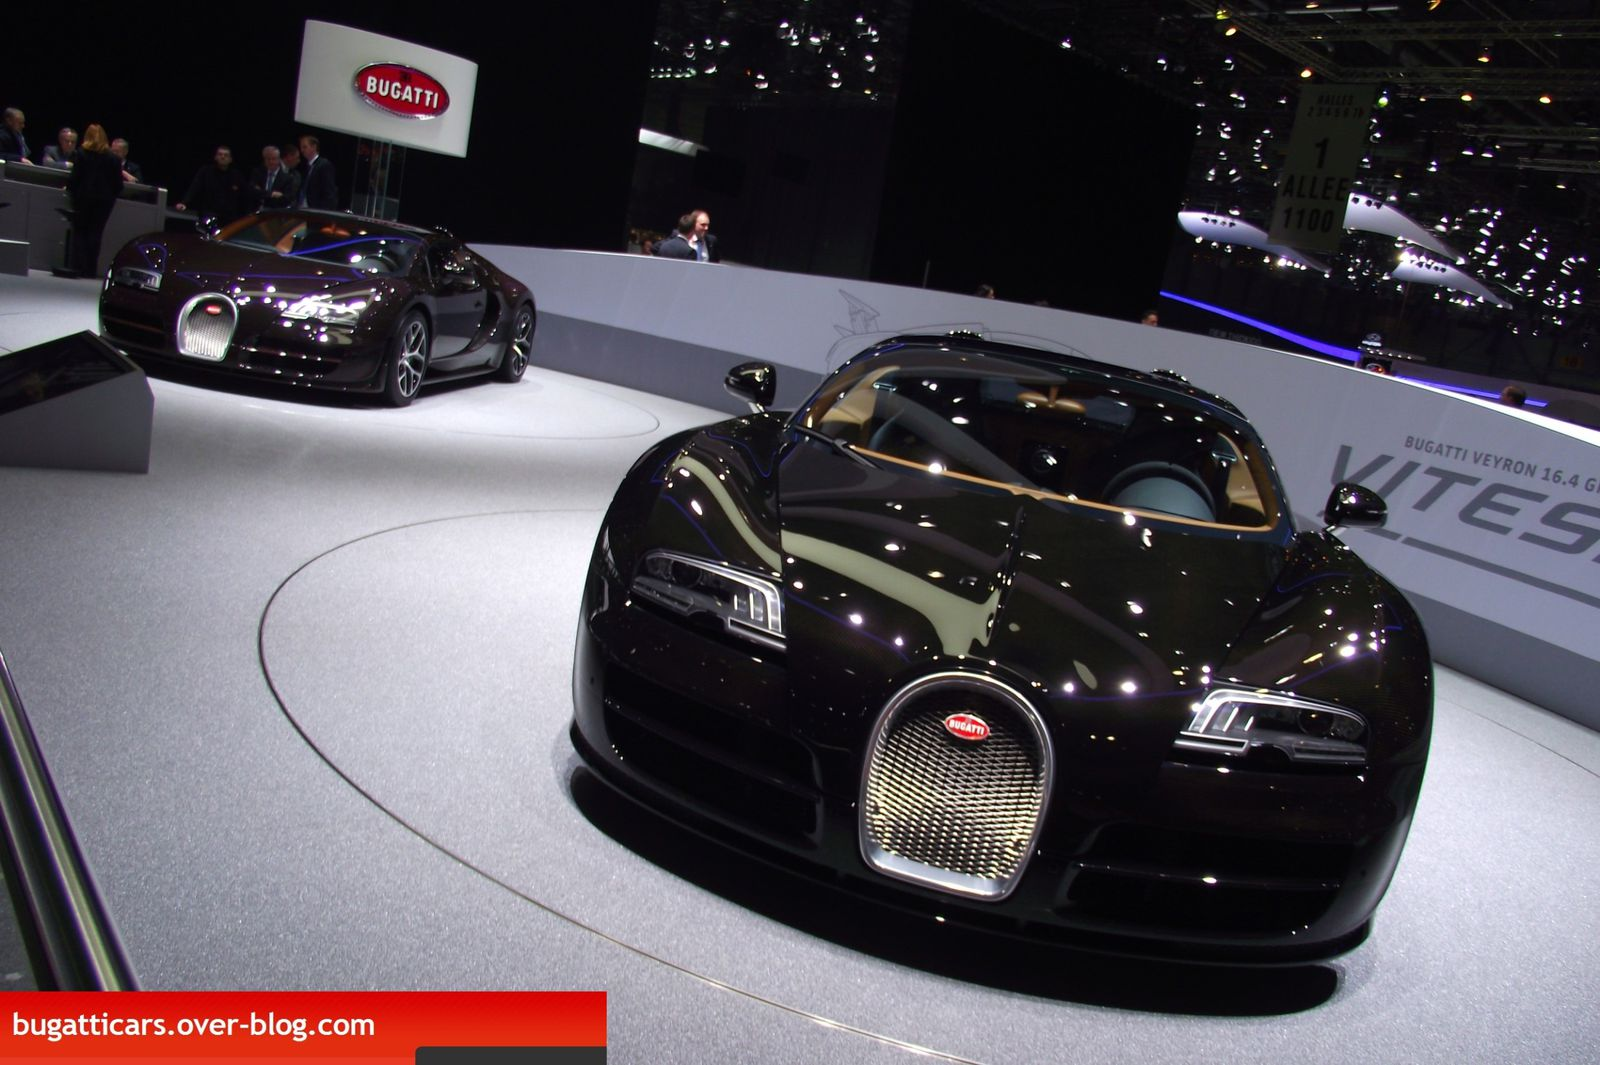 Bugatti au salon de l 39 automobile de gen ve 2013 partie 1 for Salon de l auto geneve tarif